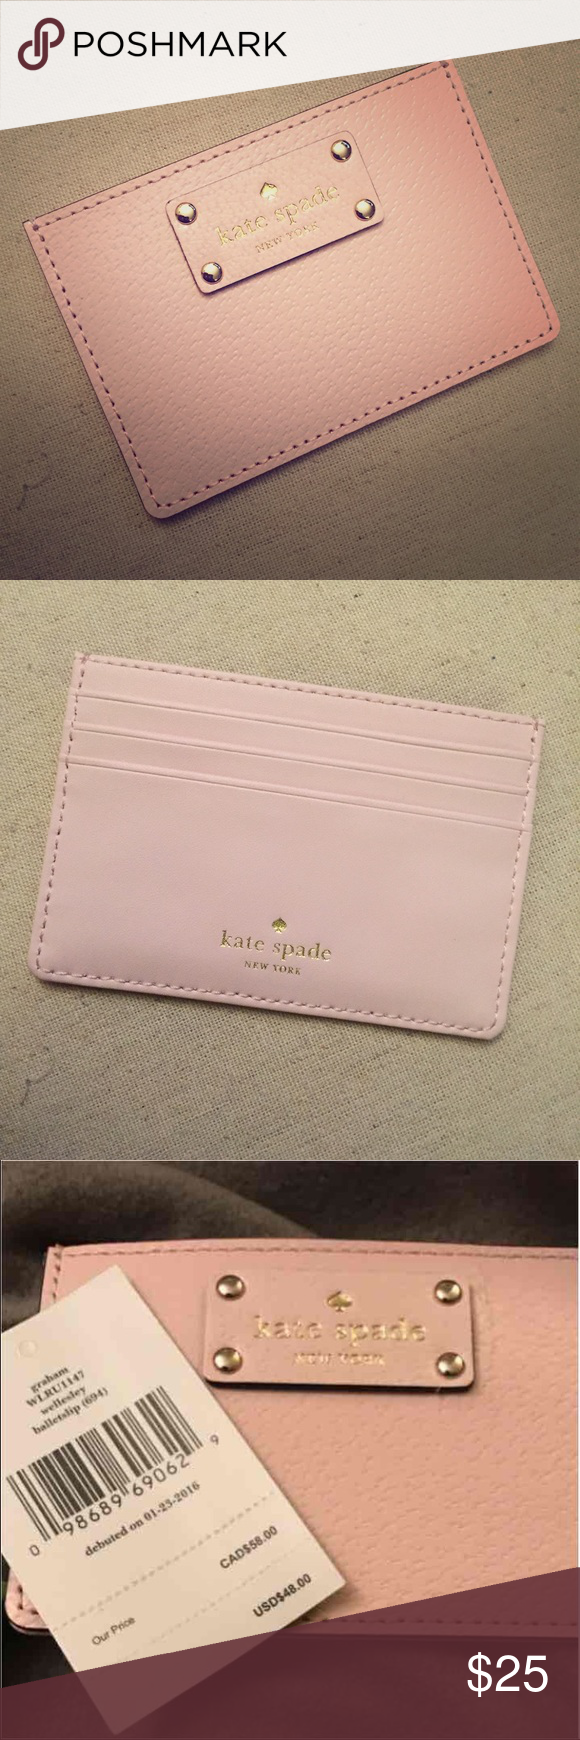 on sale 79fda b6dc0 Kate Spade pink Card holder wallet Price is firm kate spade ...